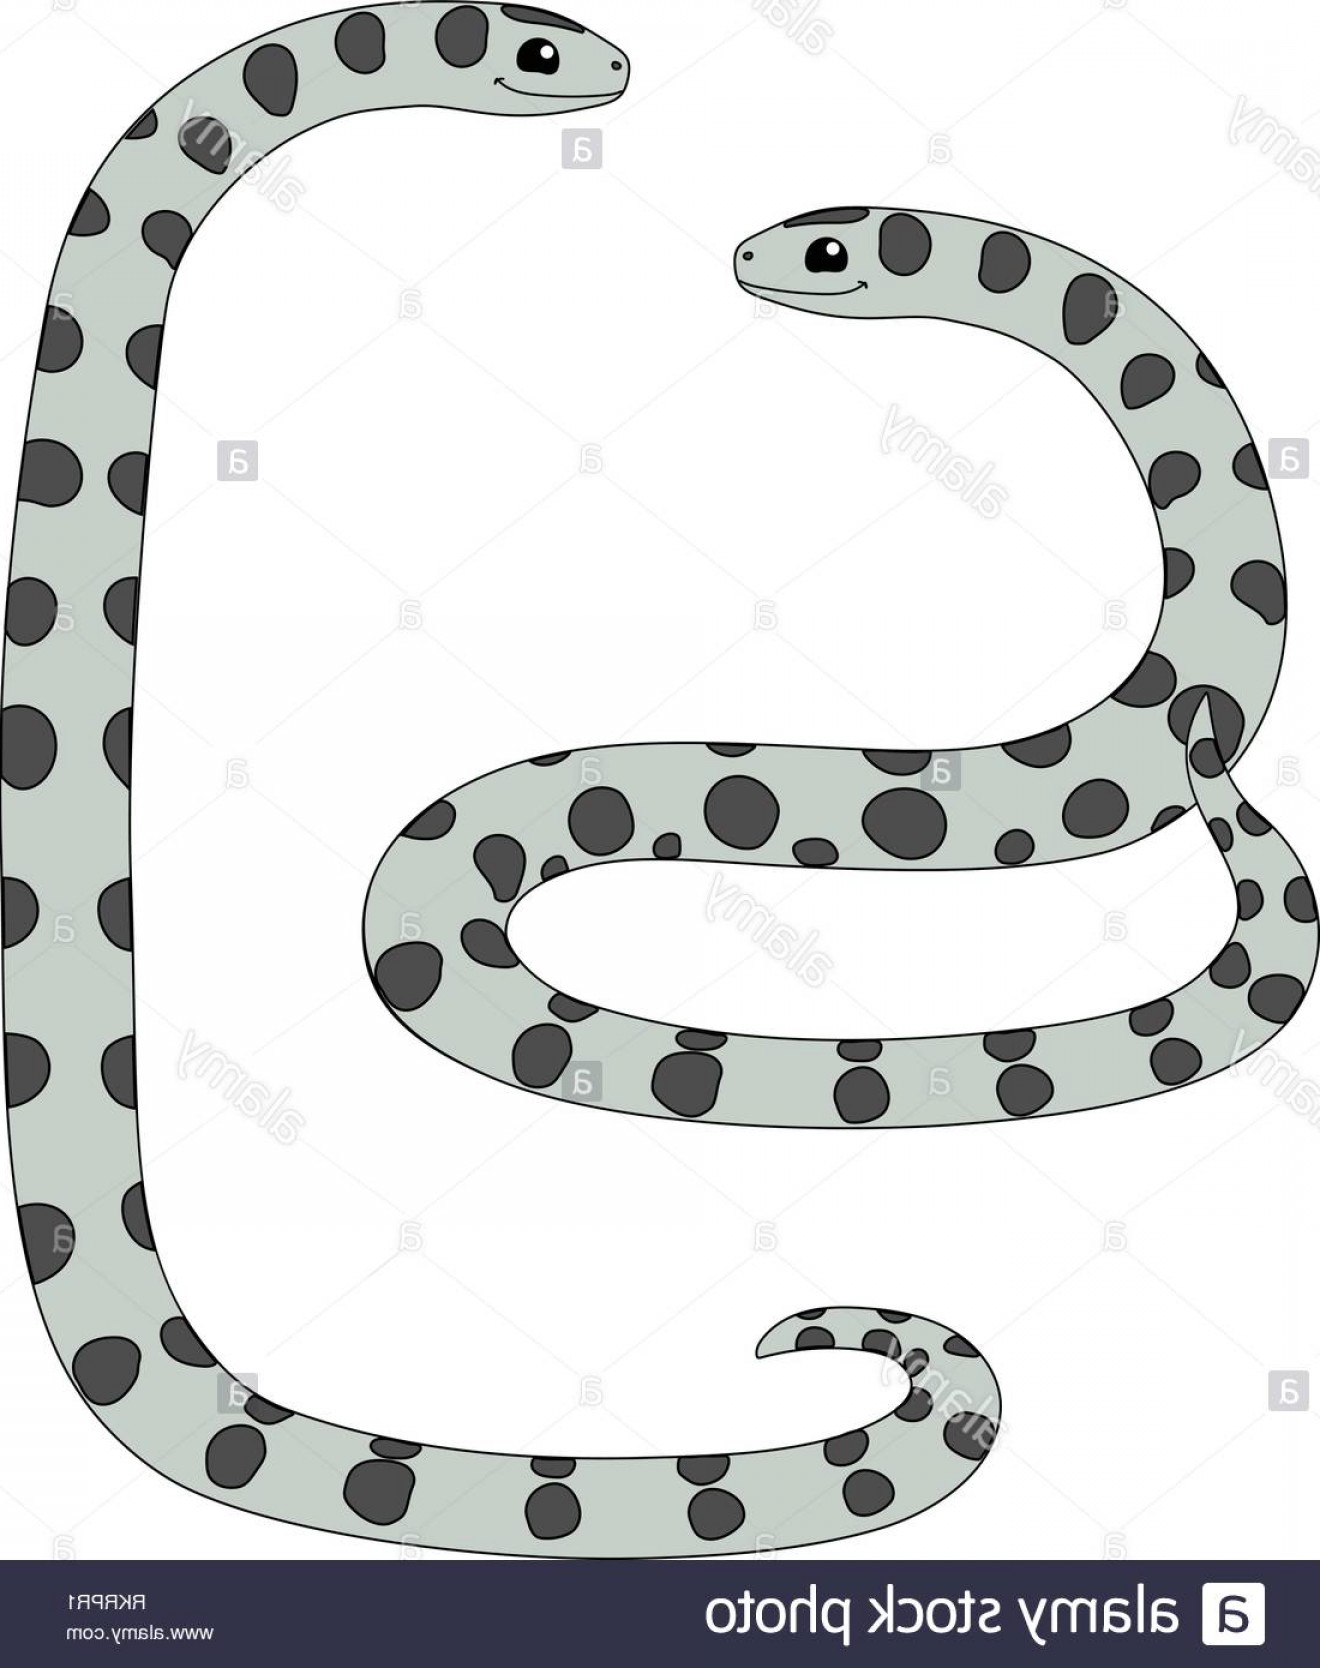 Vector Rainforest Anaconda: Vector Cartoon Animal Clipart Anaconda Snake Set Image